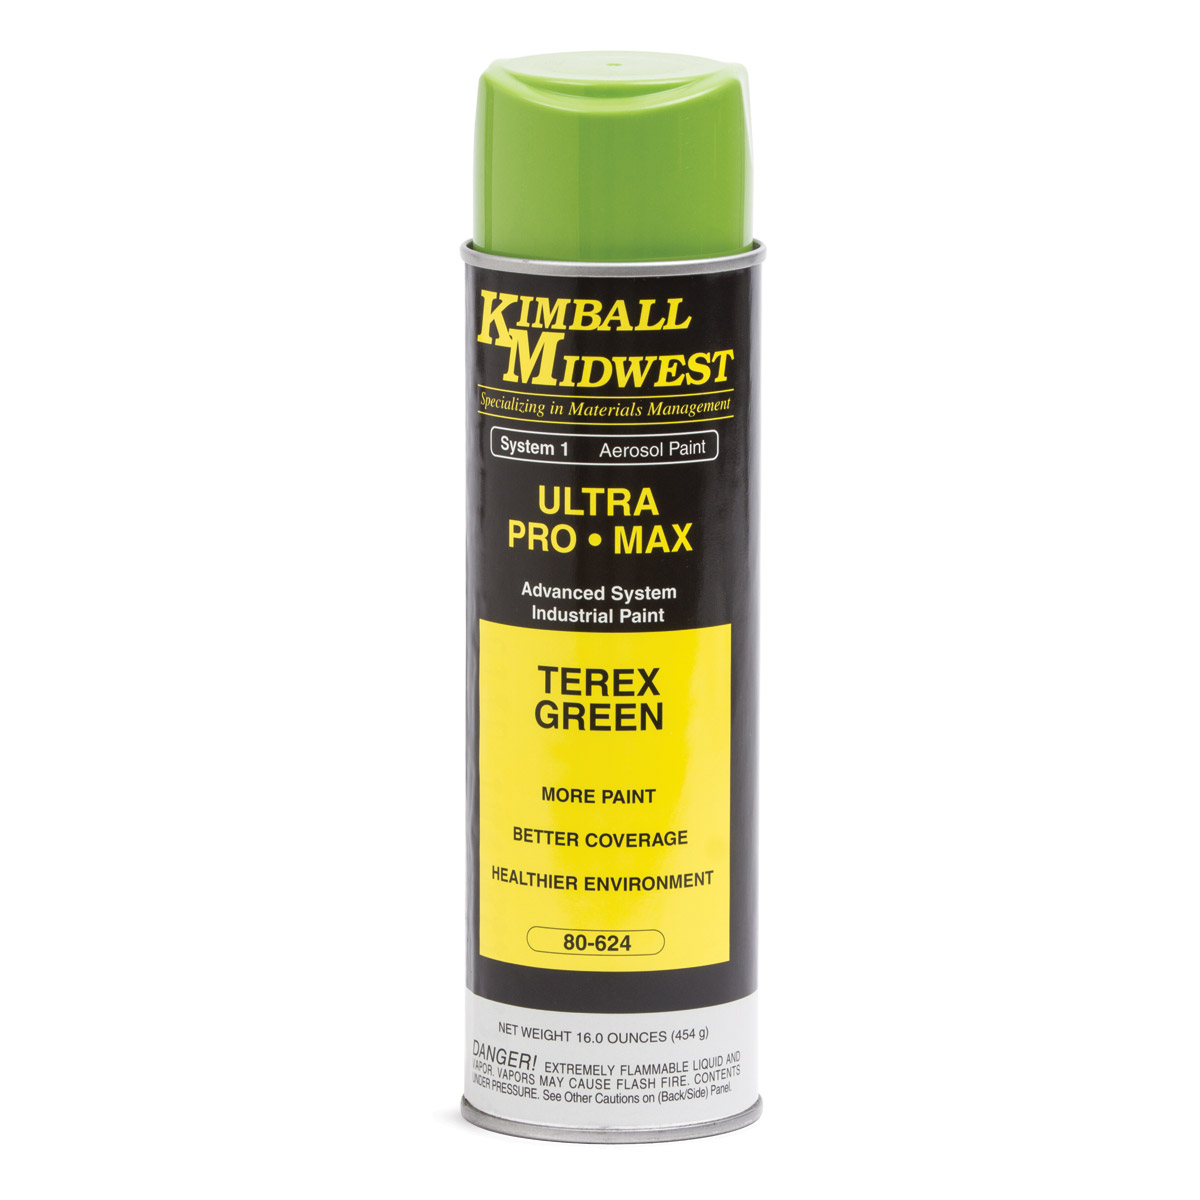 Terex Green Ultra Pro-Max Paint - Kimball Midwest